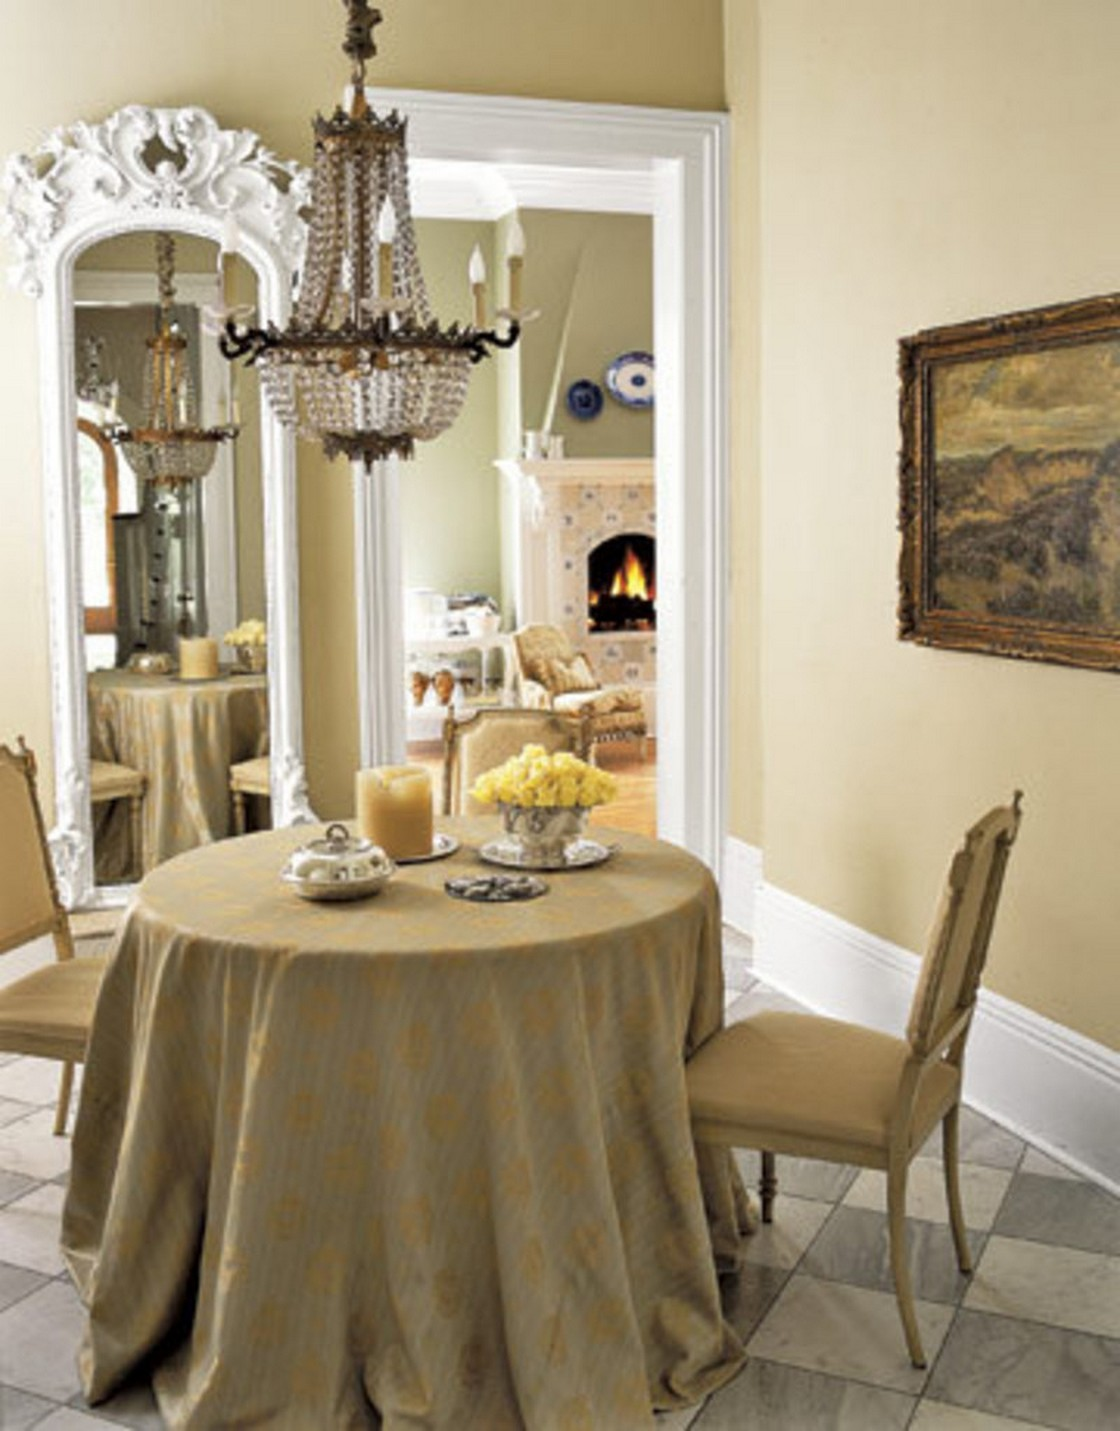 Magnificent Composition Inspiration of Dining Room You Must Know